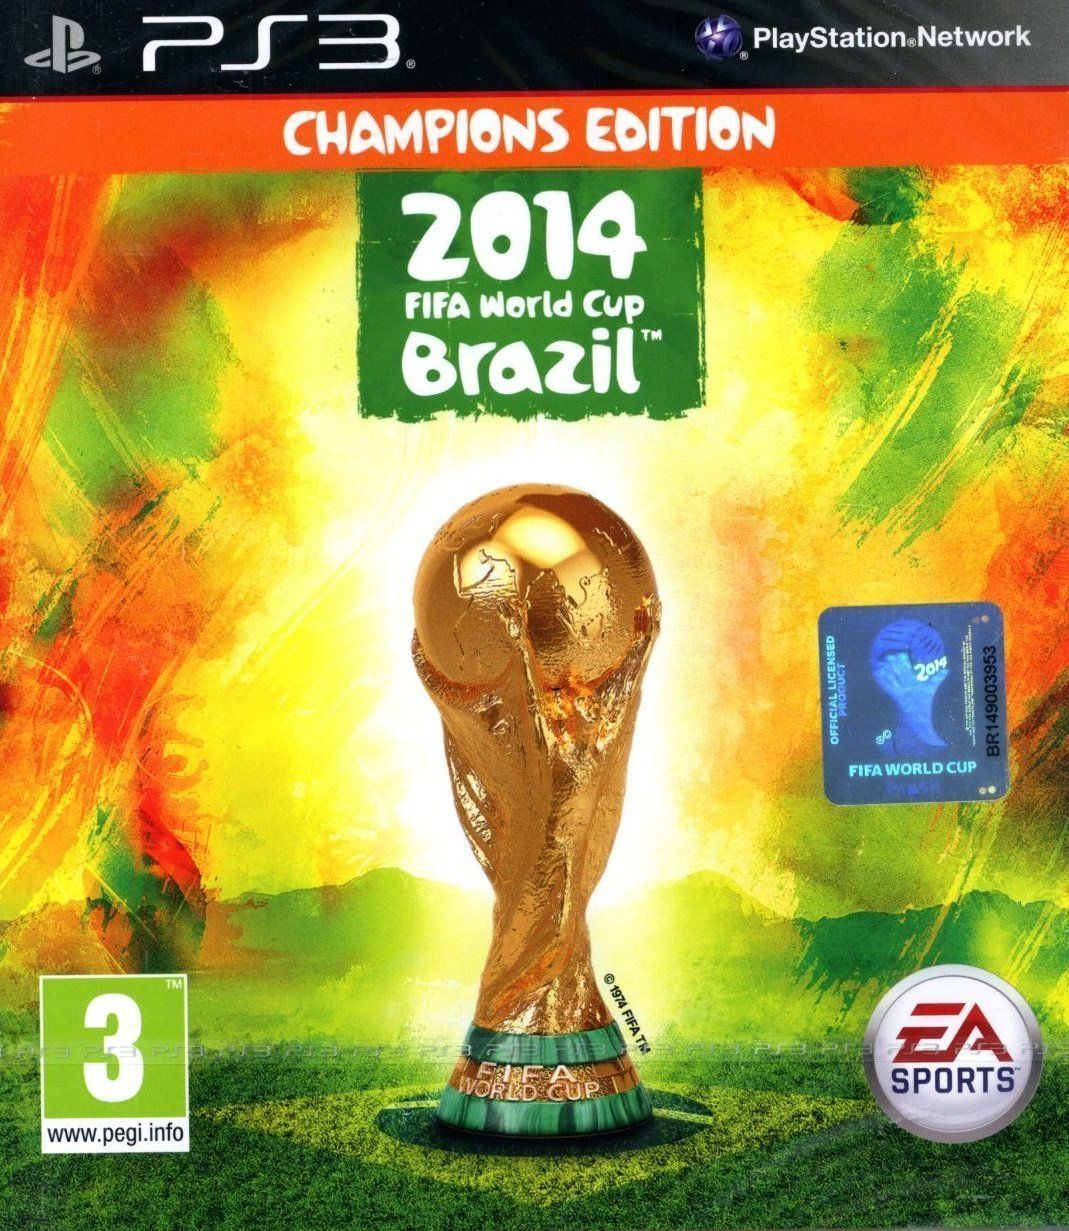 PLAYSTATION 3 NEW SEALED GAME  FIFA WORLD CUP 2014 CHAMPIONS EDITION  PS3  https://t.co/r7vTjrg2hk https://t.co/enpb7diEfM